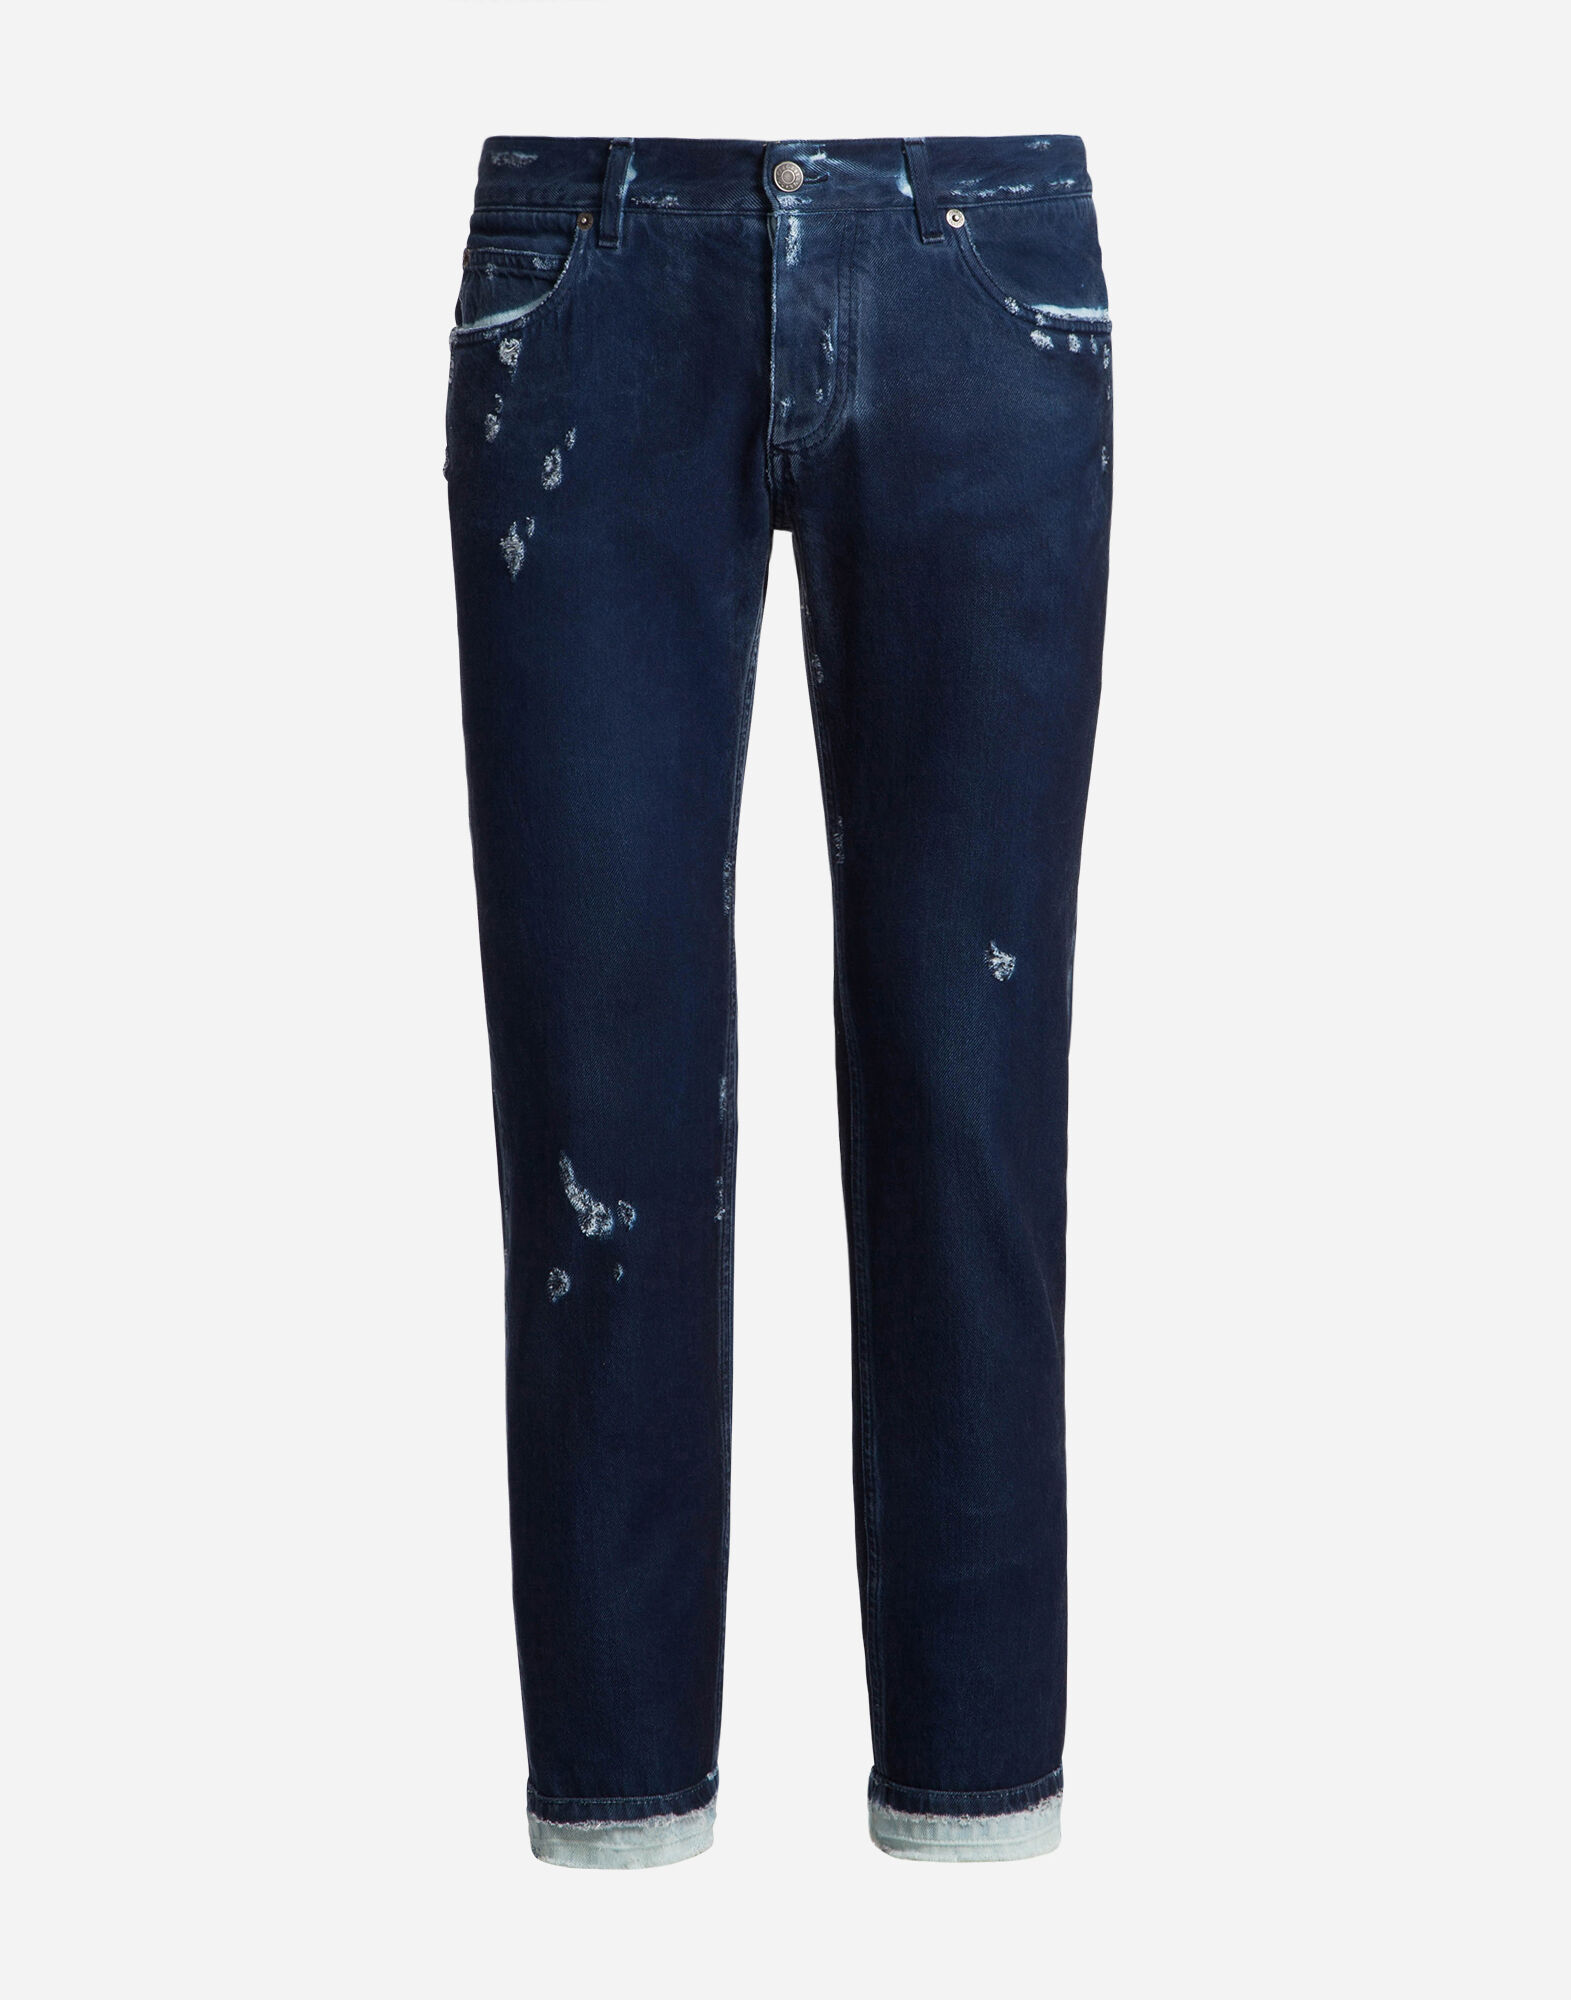 CLASSIC FIT JEANS